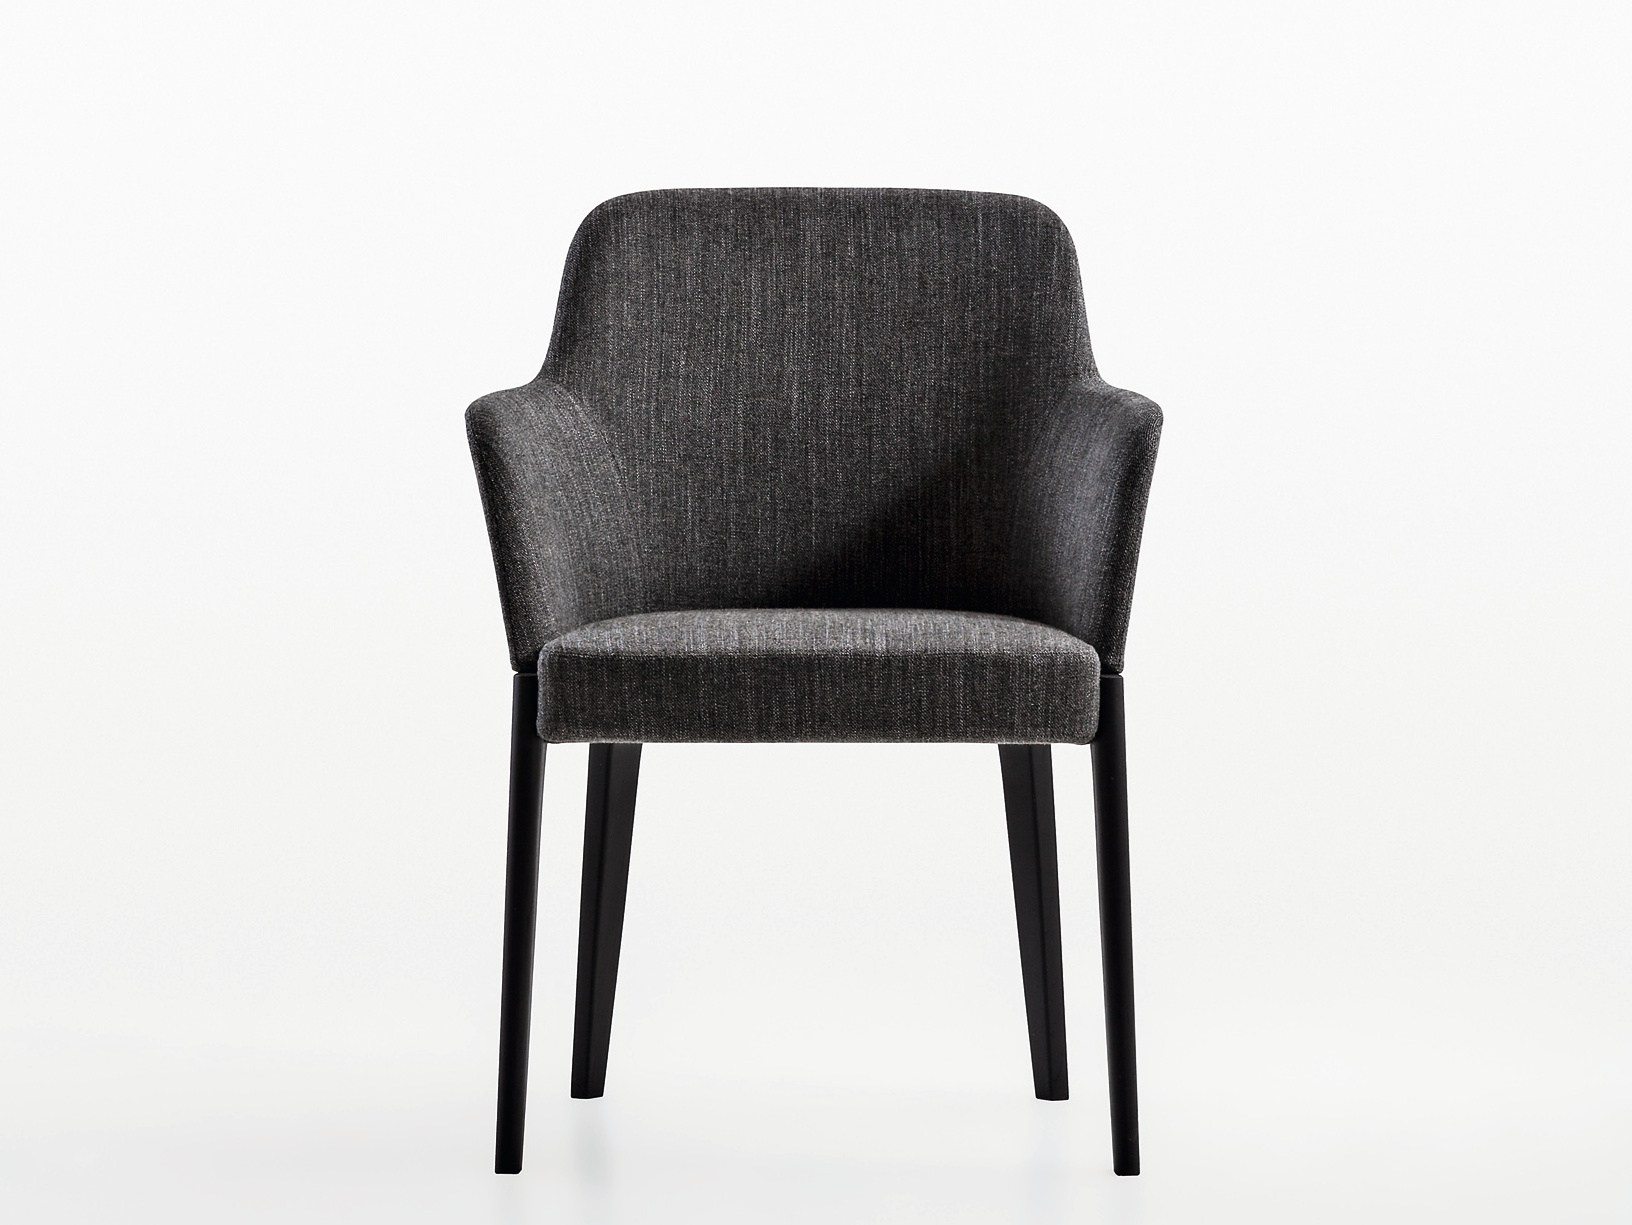 molteni c chelsea chair. Black Bedroom Furniture Sets. Home Design Ideas